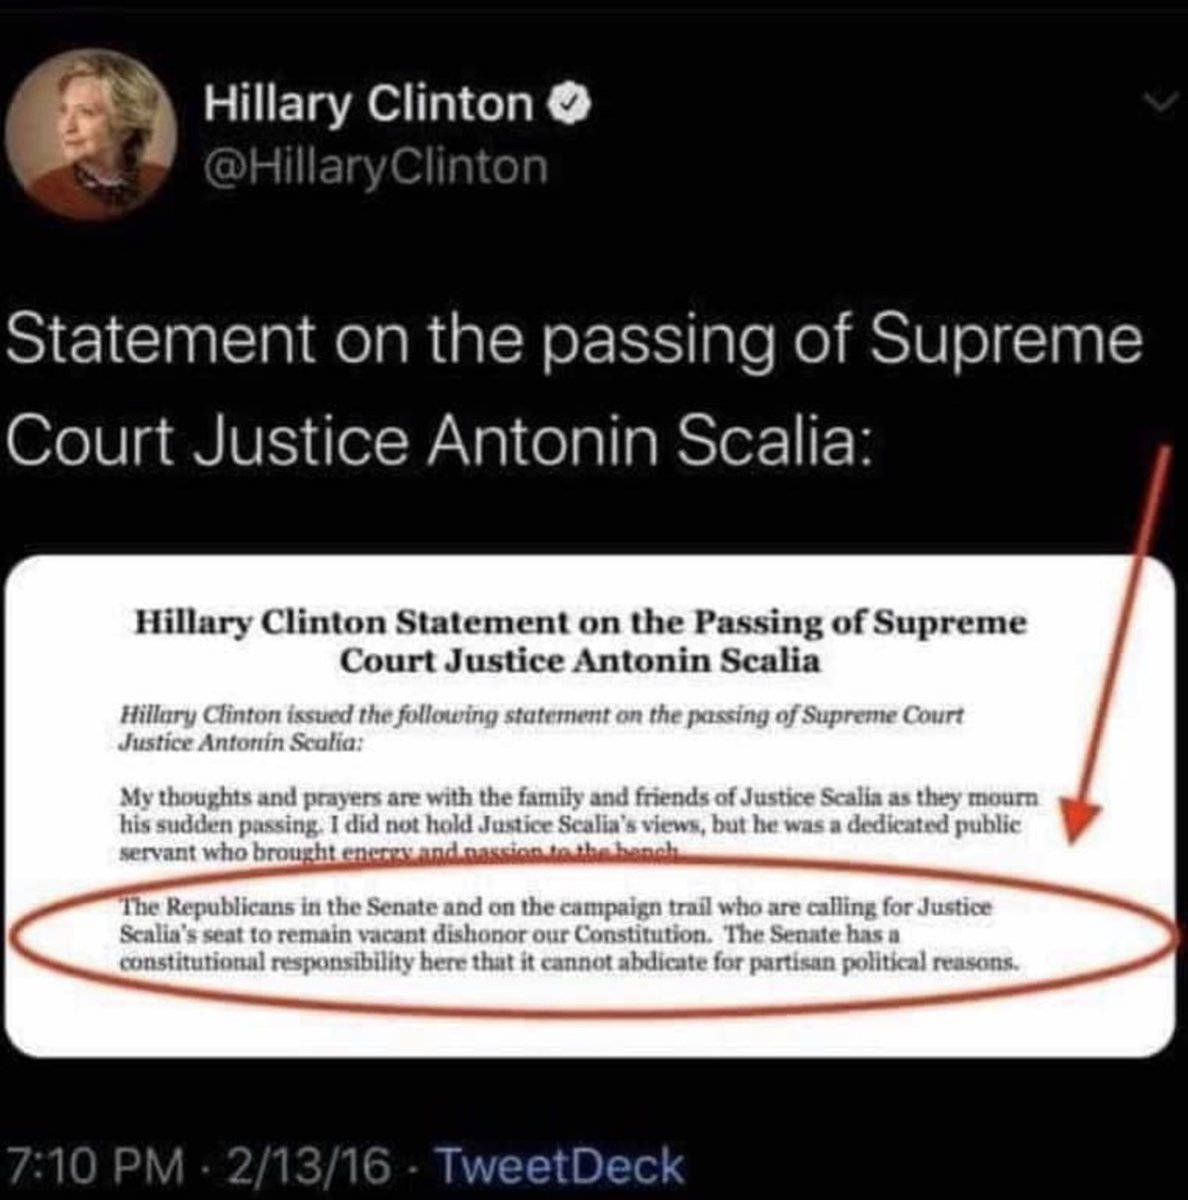 @HillaryClinton's words on SCOTUS during an election year 4 years ago.  The Supreme Court pick will be decided before Nov 3rd as per Article II, section 2. Not by Joe Biden. Not by Hollywood. Not by those threatening violence on Twitter. https://t.co/9YCAV1j4Ow